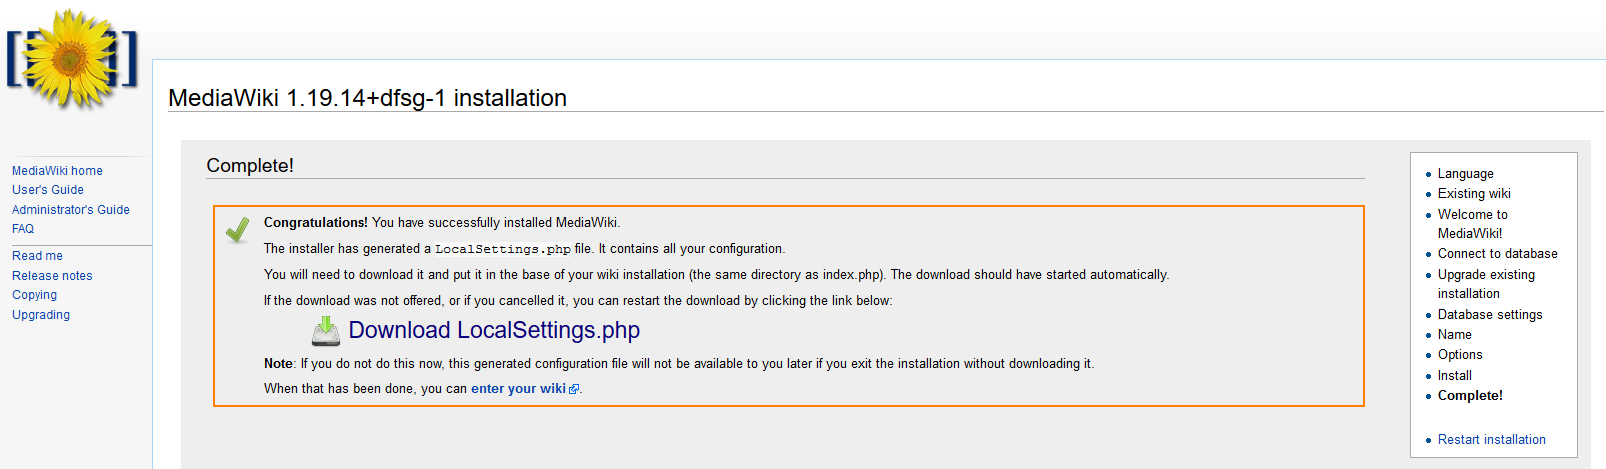 MediaWiki installation: LocalSettings.php file download